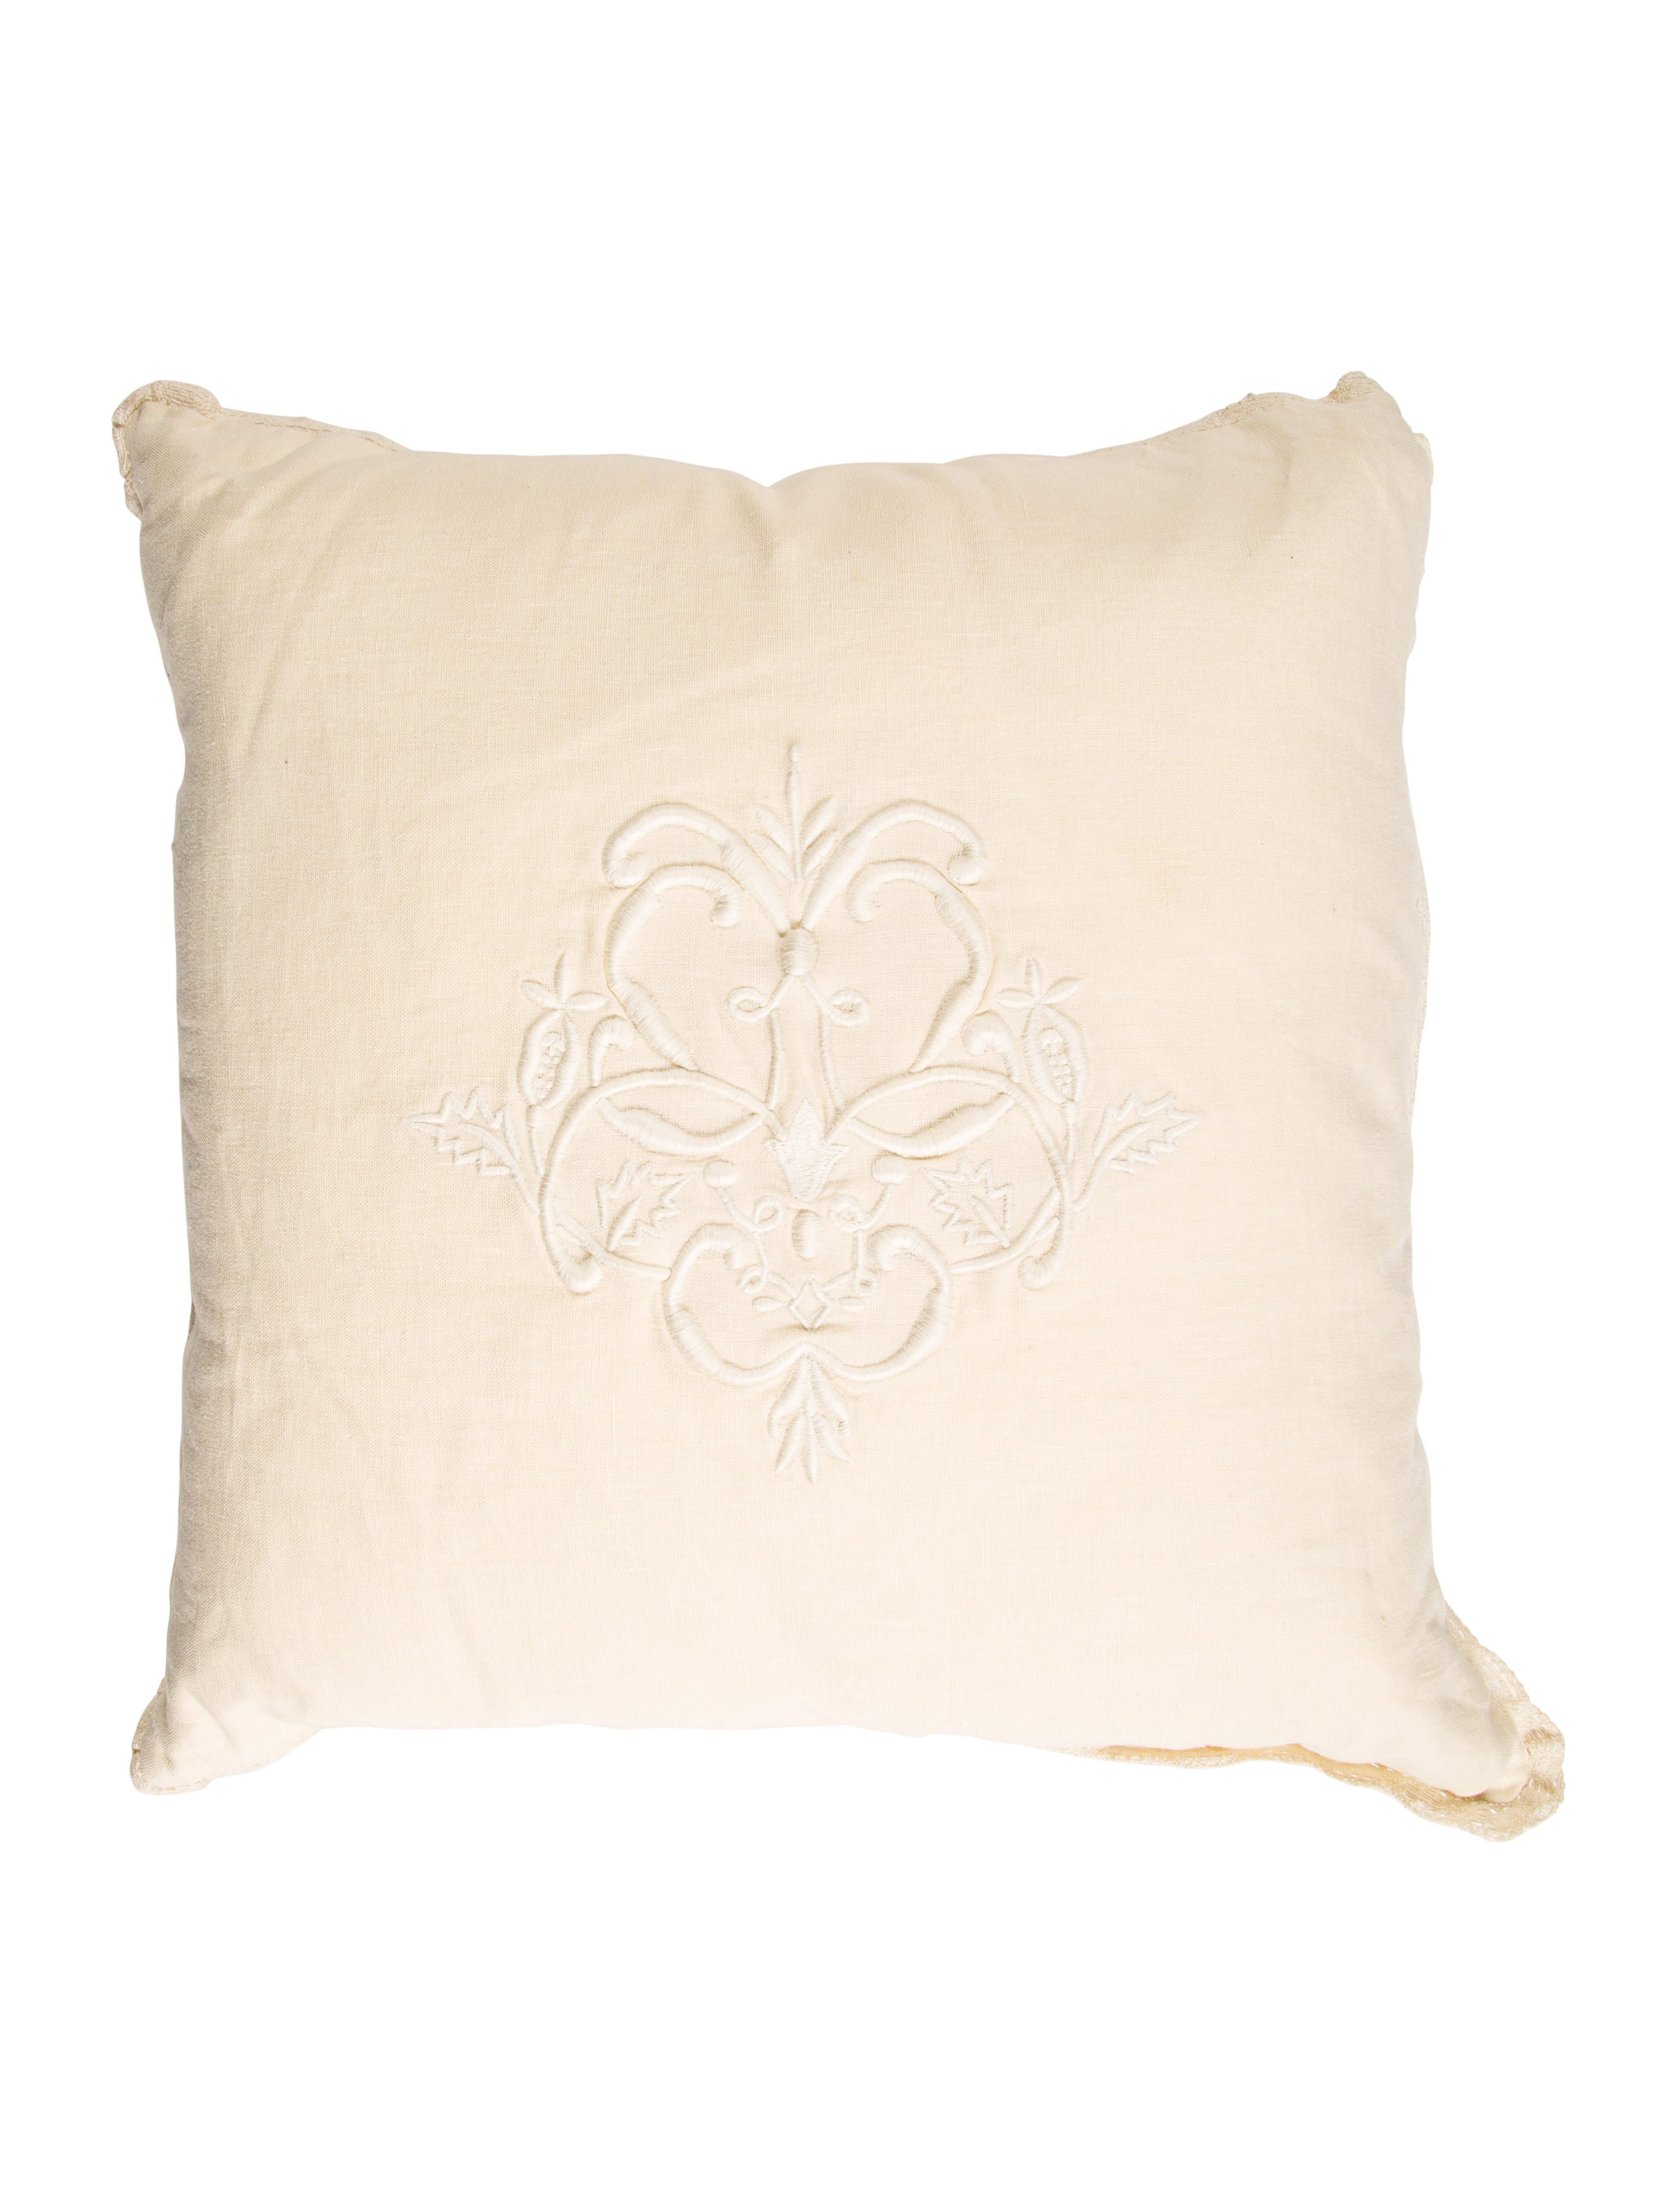 Ralph Lauren Embroidered Throw Pillow - Bedding And Bath - WYG22448 The RealReal